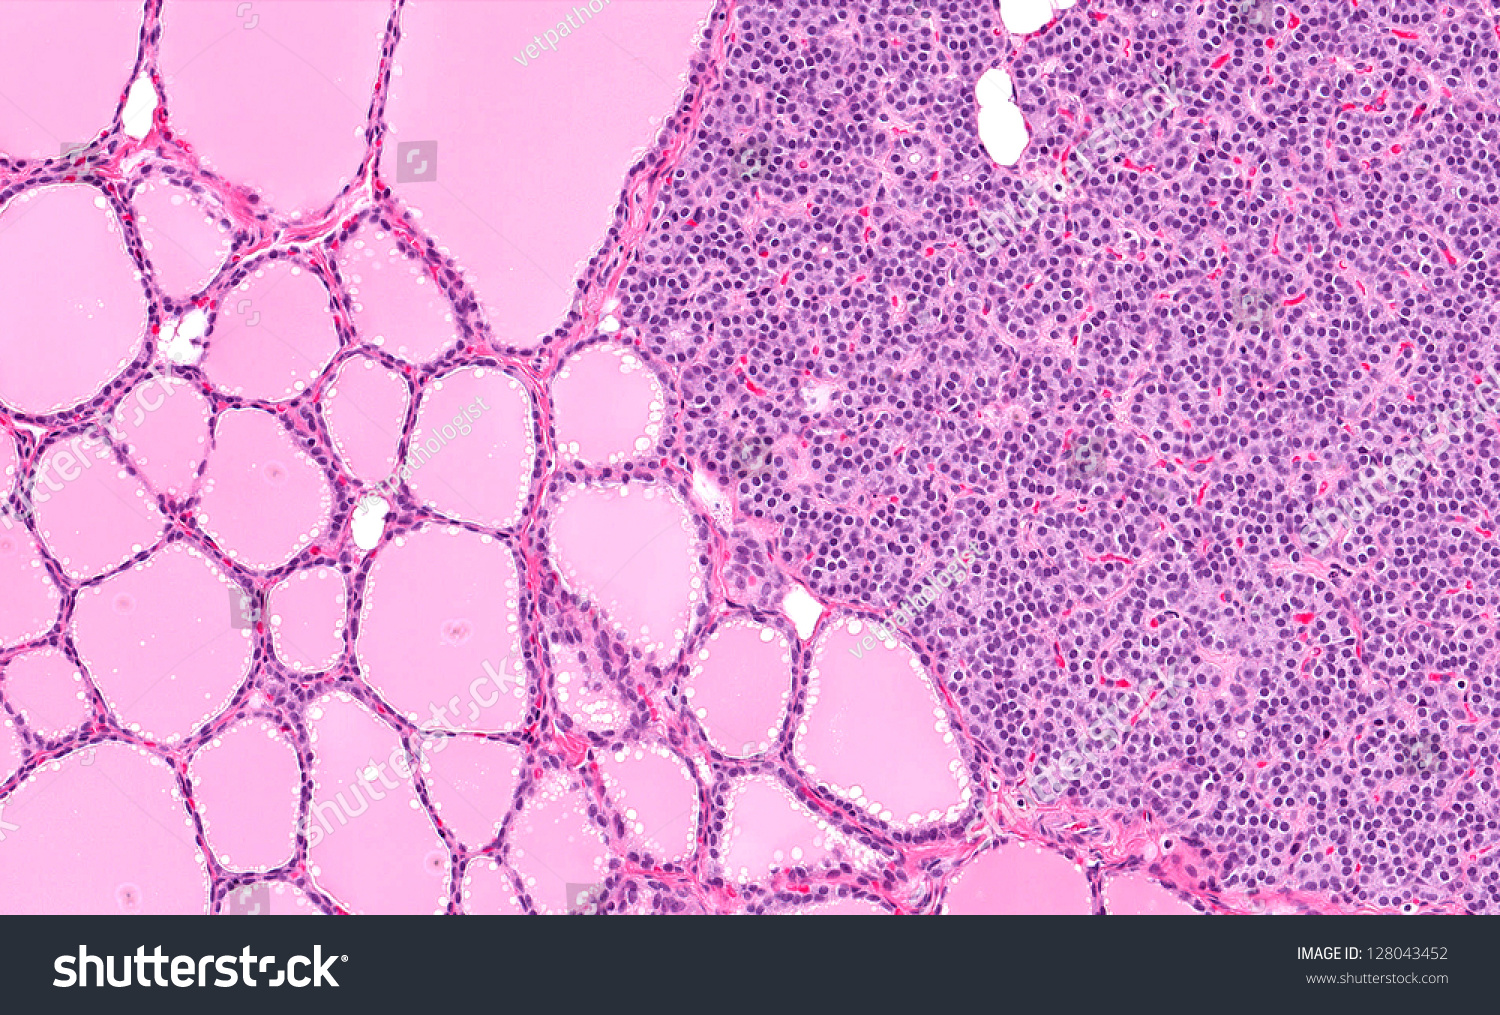 Normal Healthy Parathyroid Gland Right Half Stock Photo Edit Now